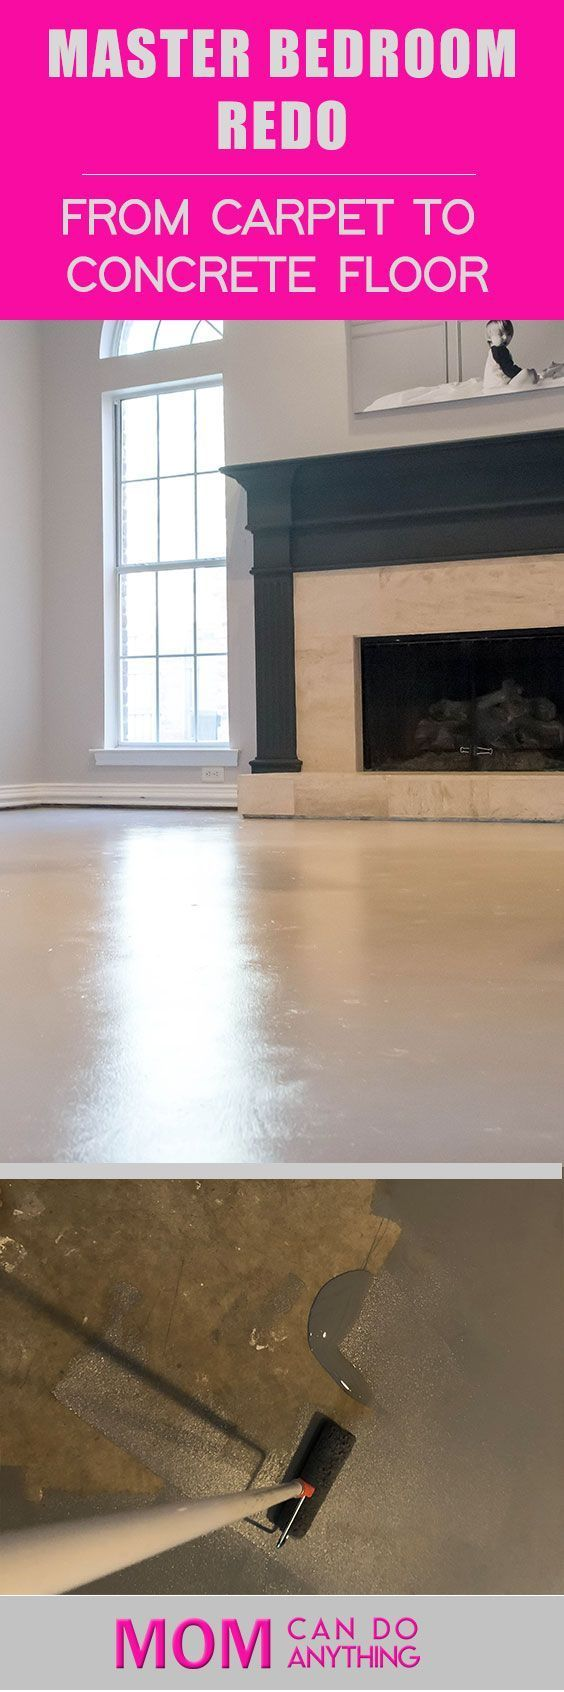 how to do concrete staining